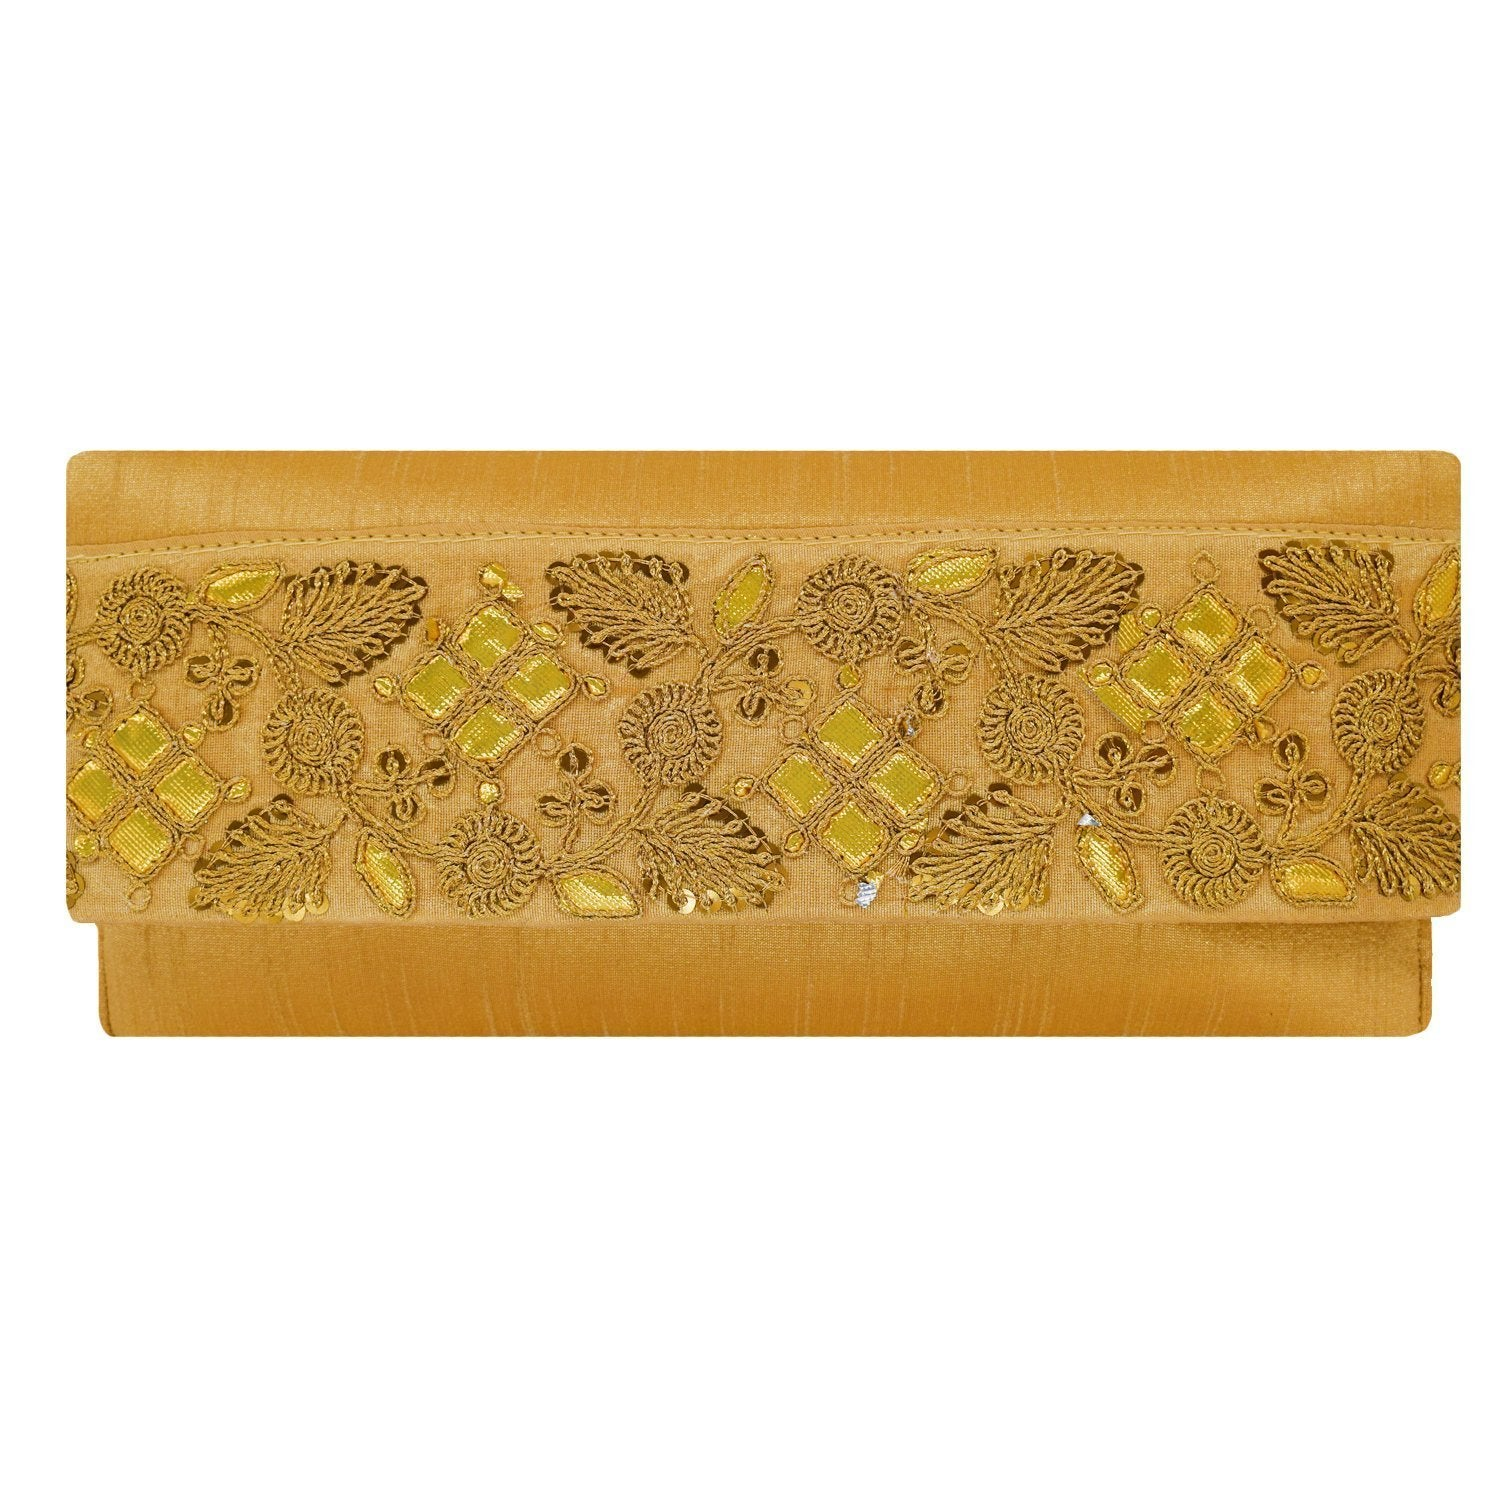 Ethnic Silk Embroidery Work Clutch (Gold) - Bagaholics Gift